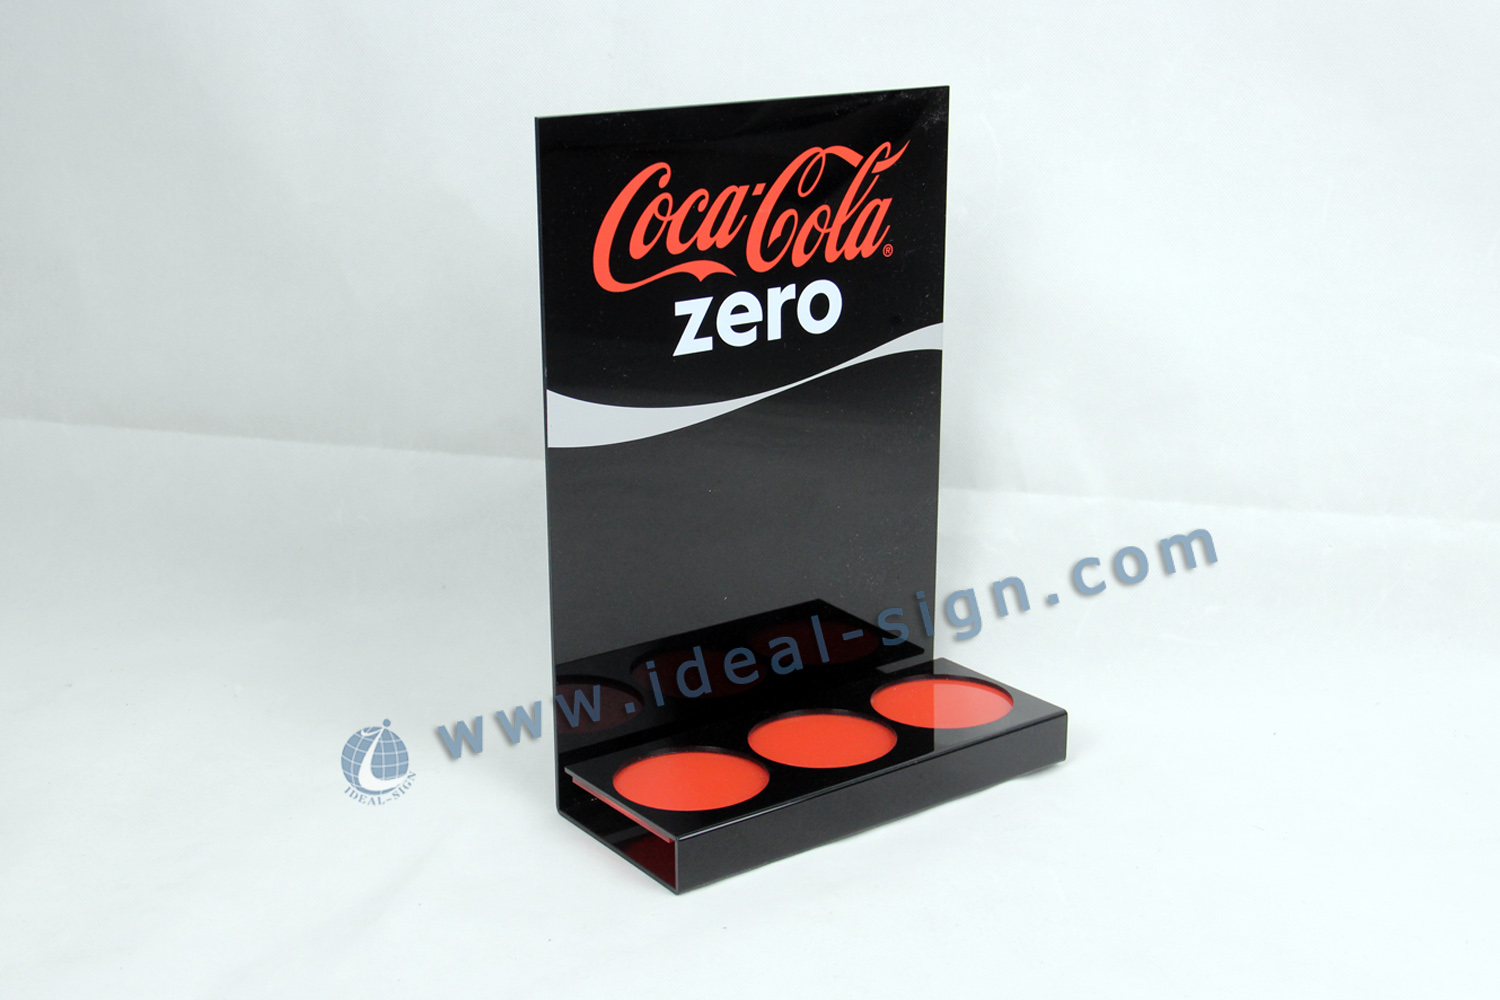 Wholesaler CocaCola Zero Acrylic Liquor Bottle Stand